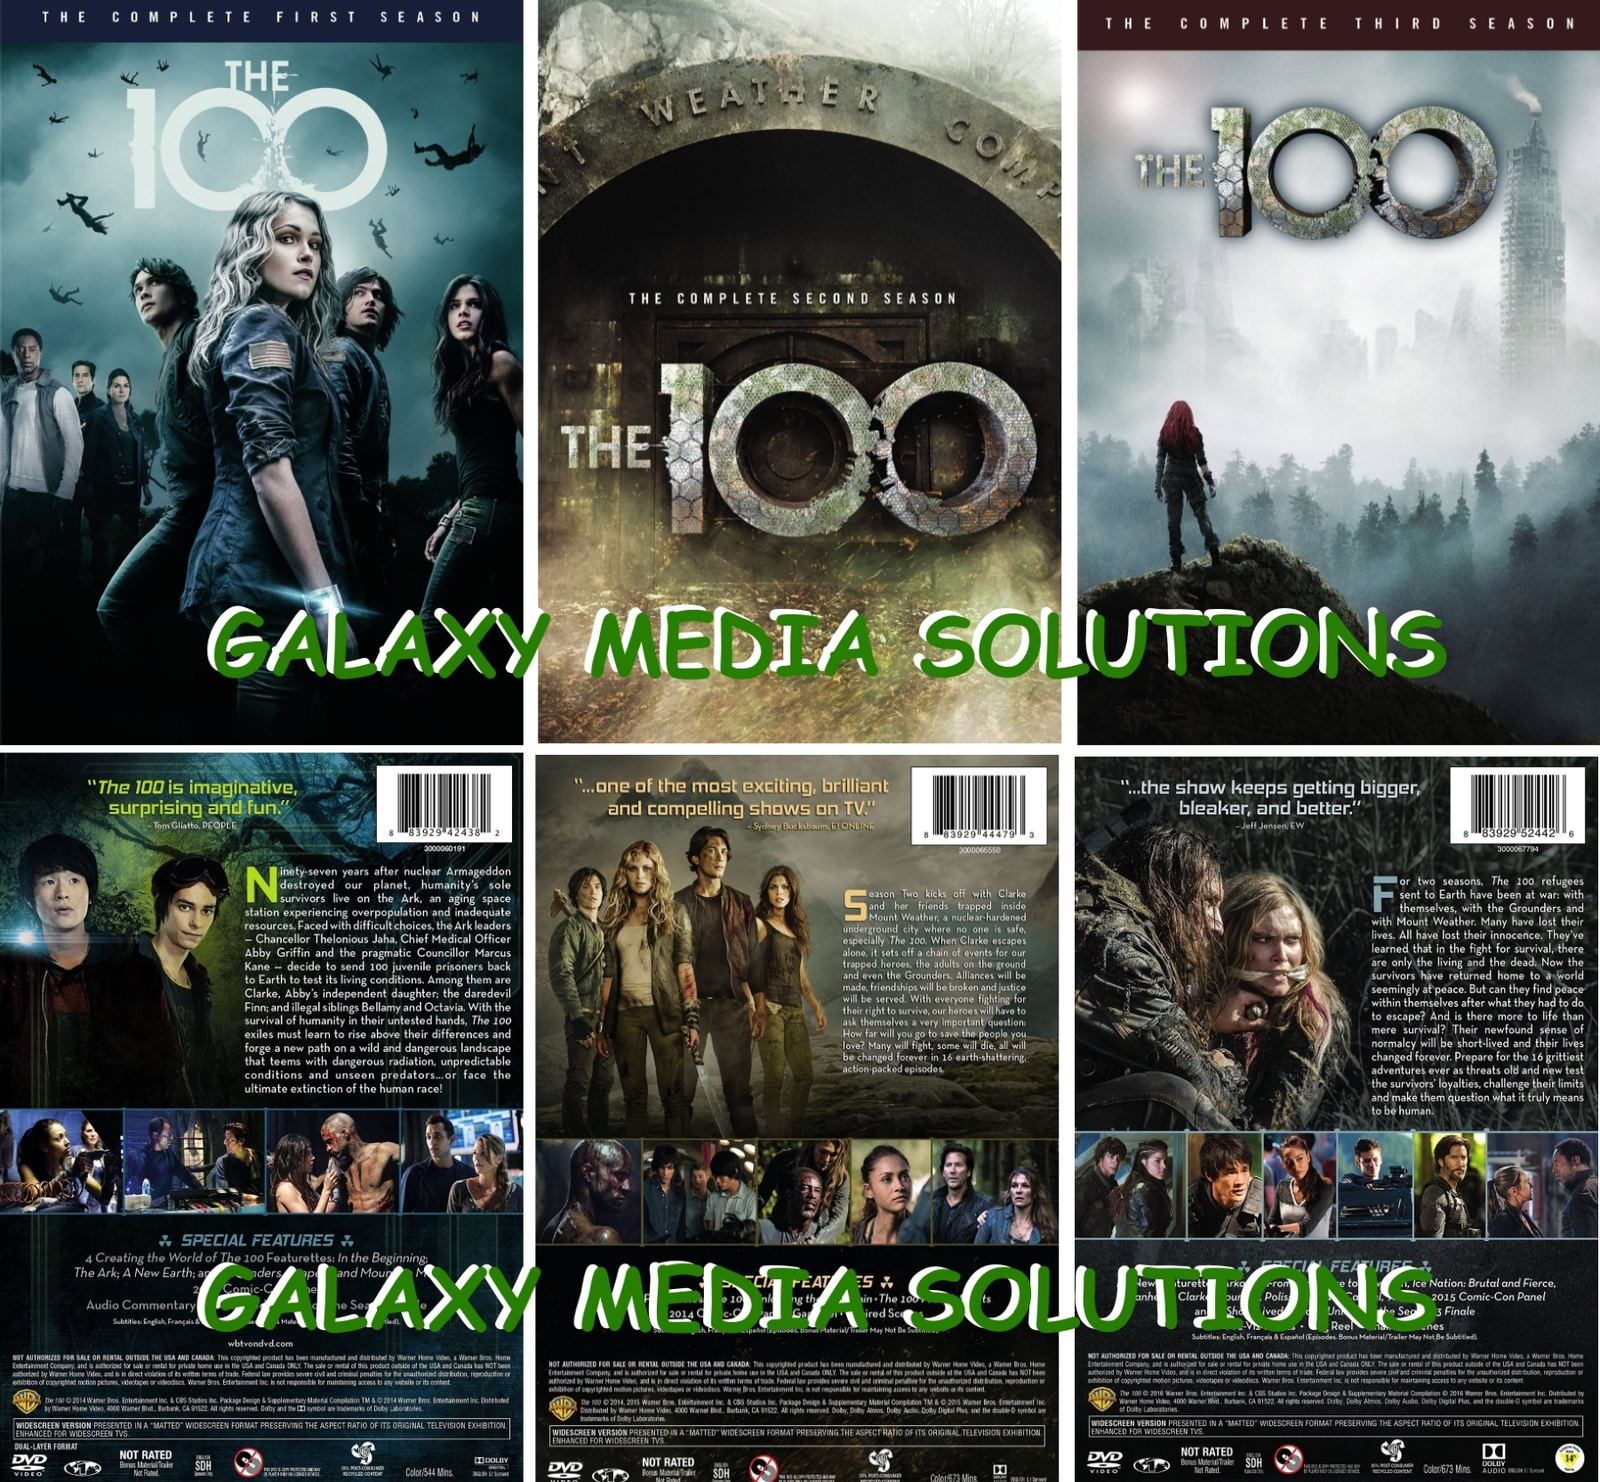 The 100 season 1 3 dvd bundle